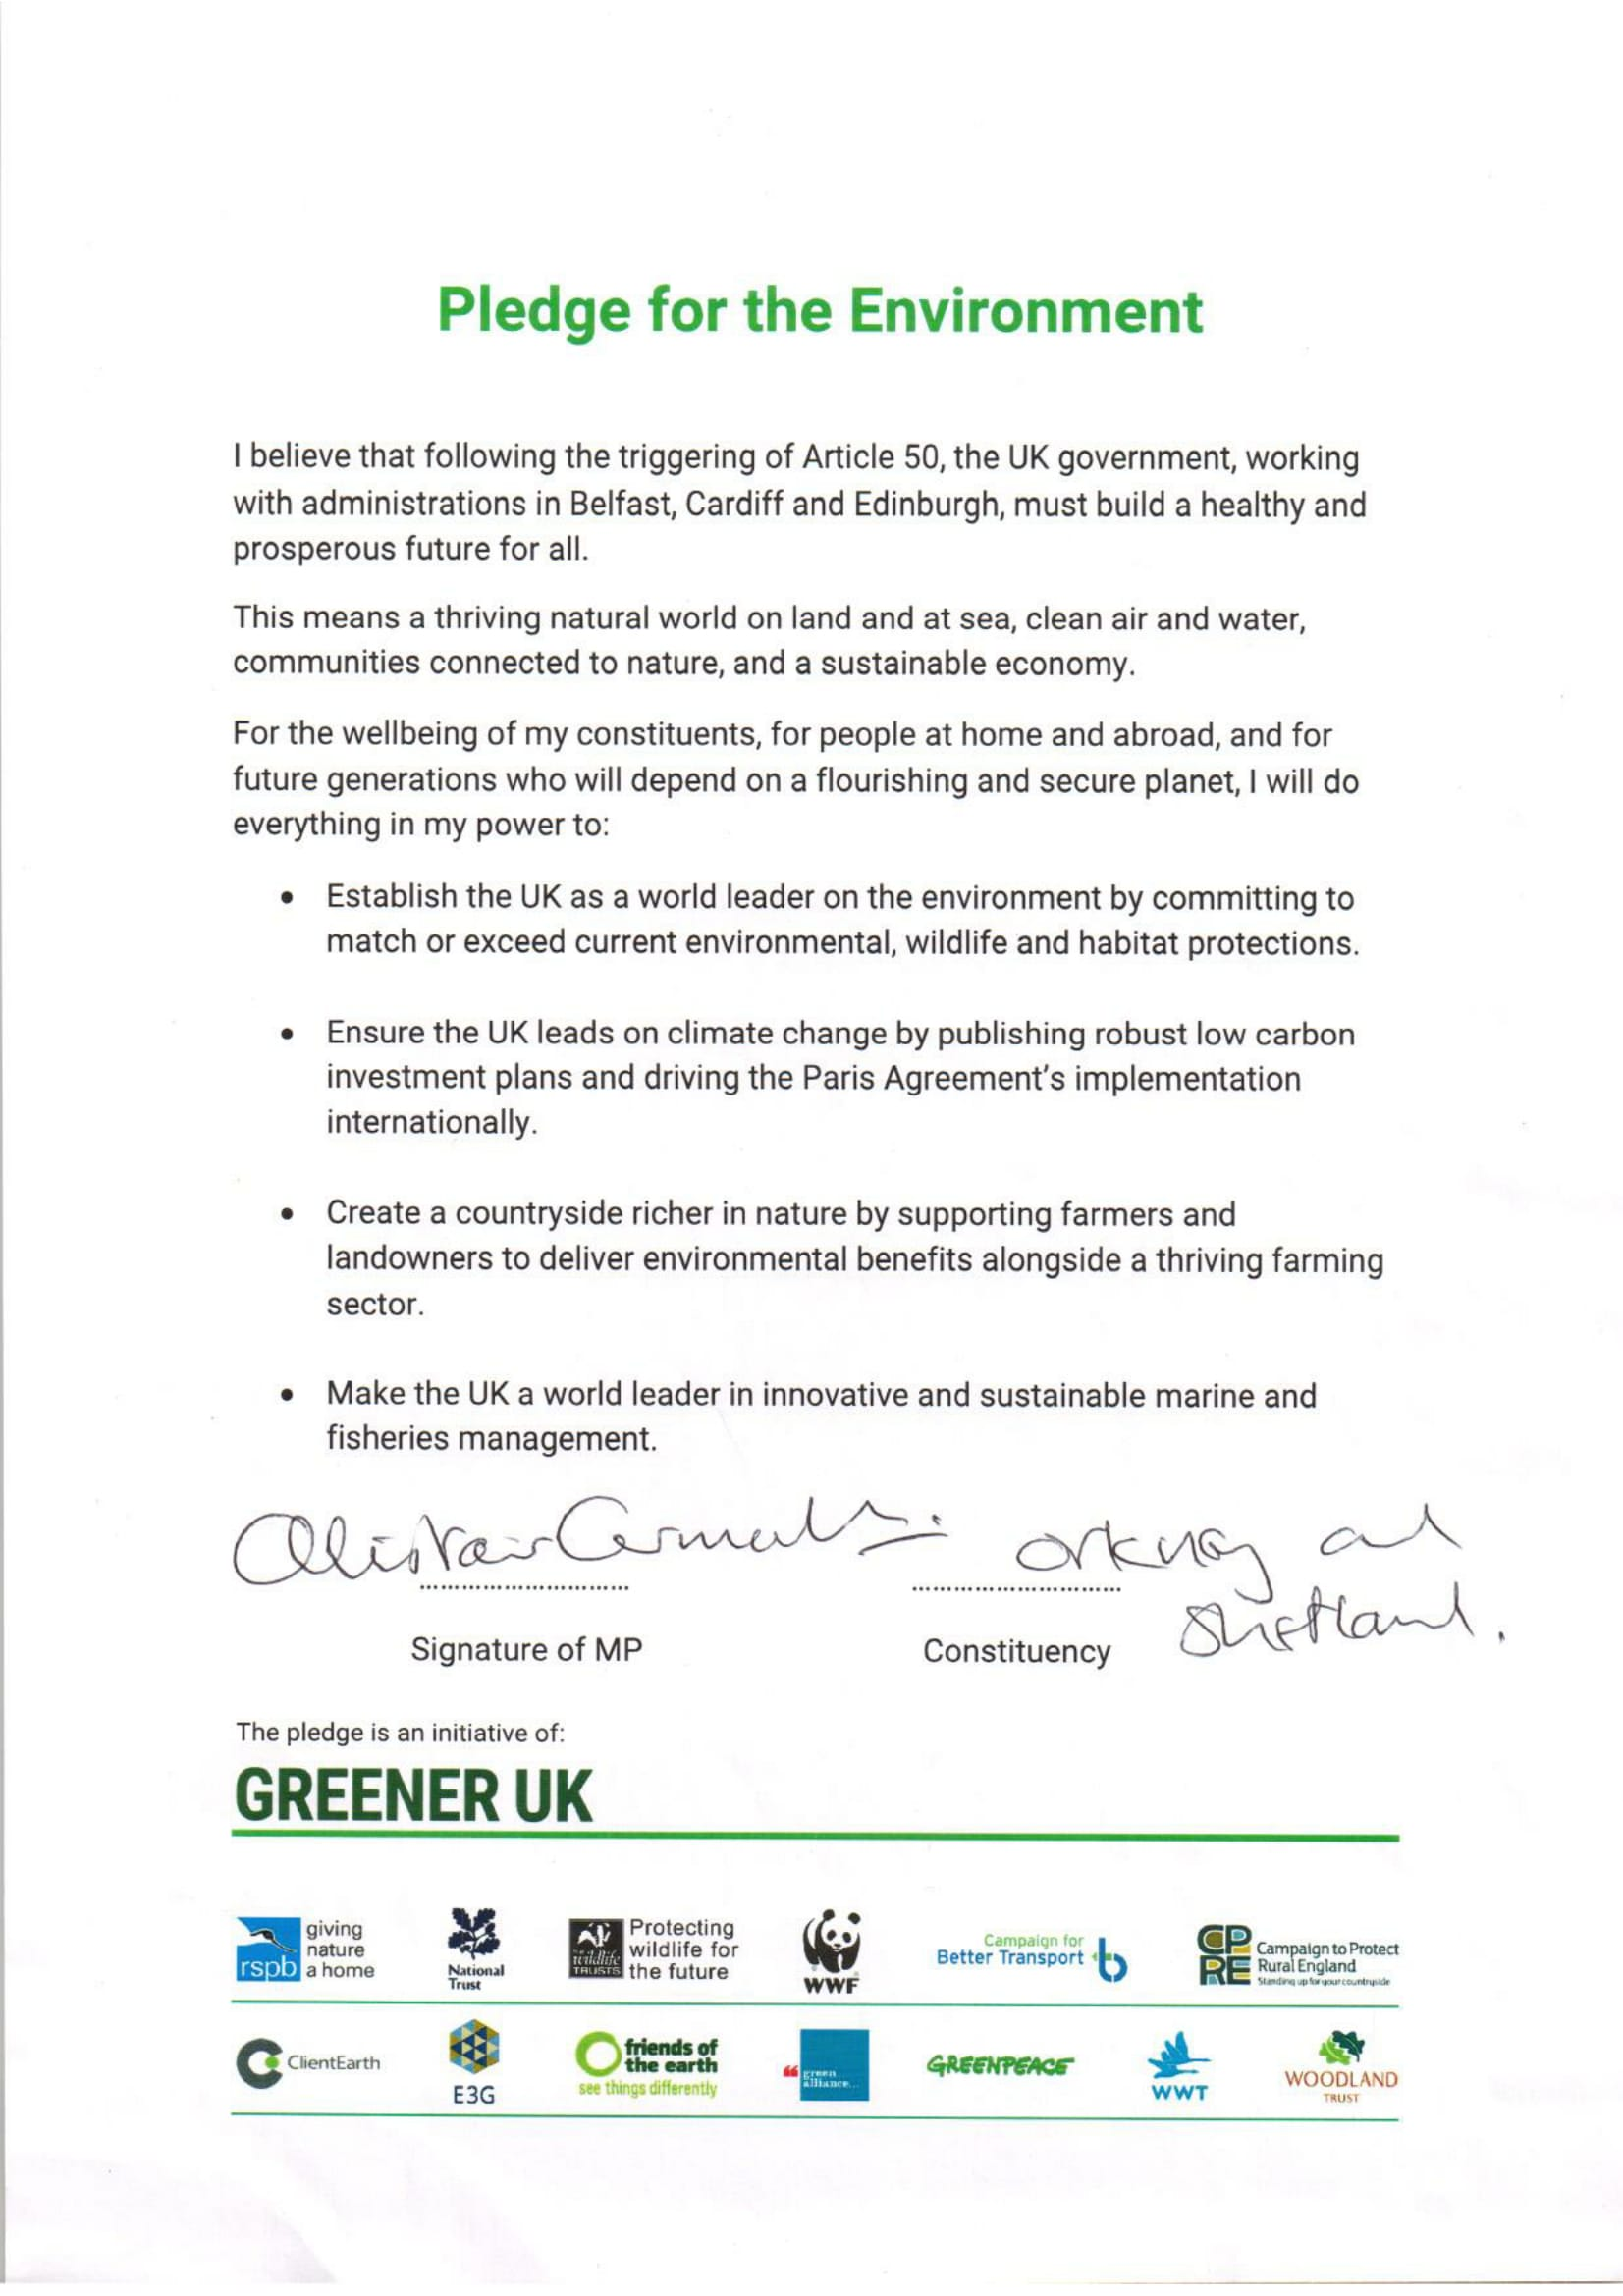 Key_Pledge_for_the_Environment-1.jpg